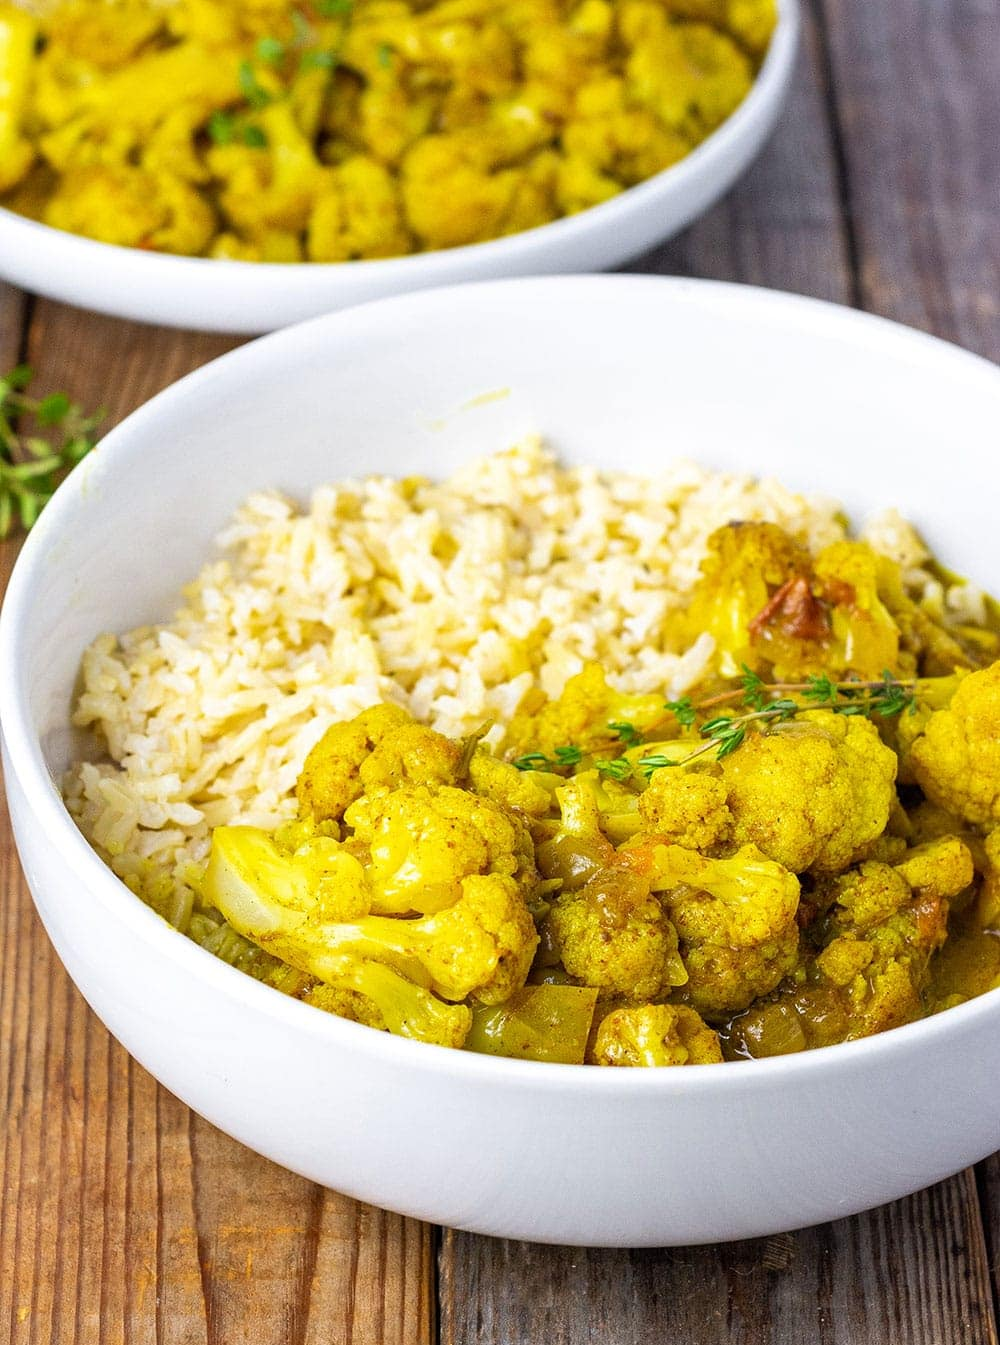 Cauliflower curry with brown rice in a white bowl on a wooden background